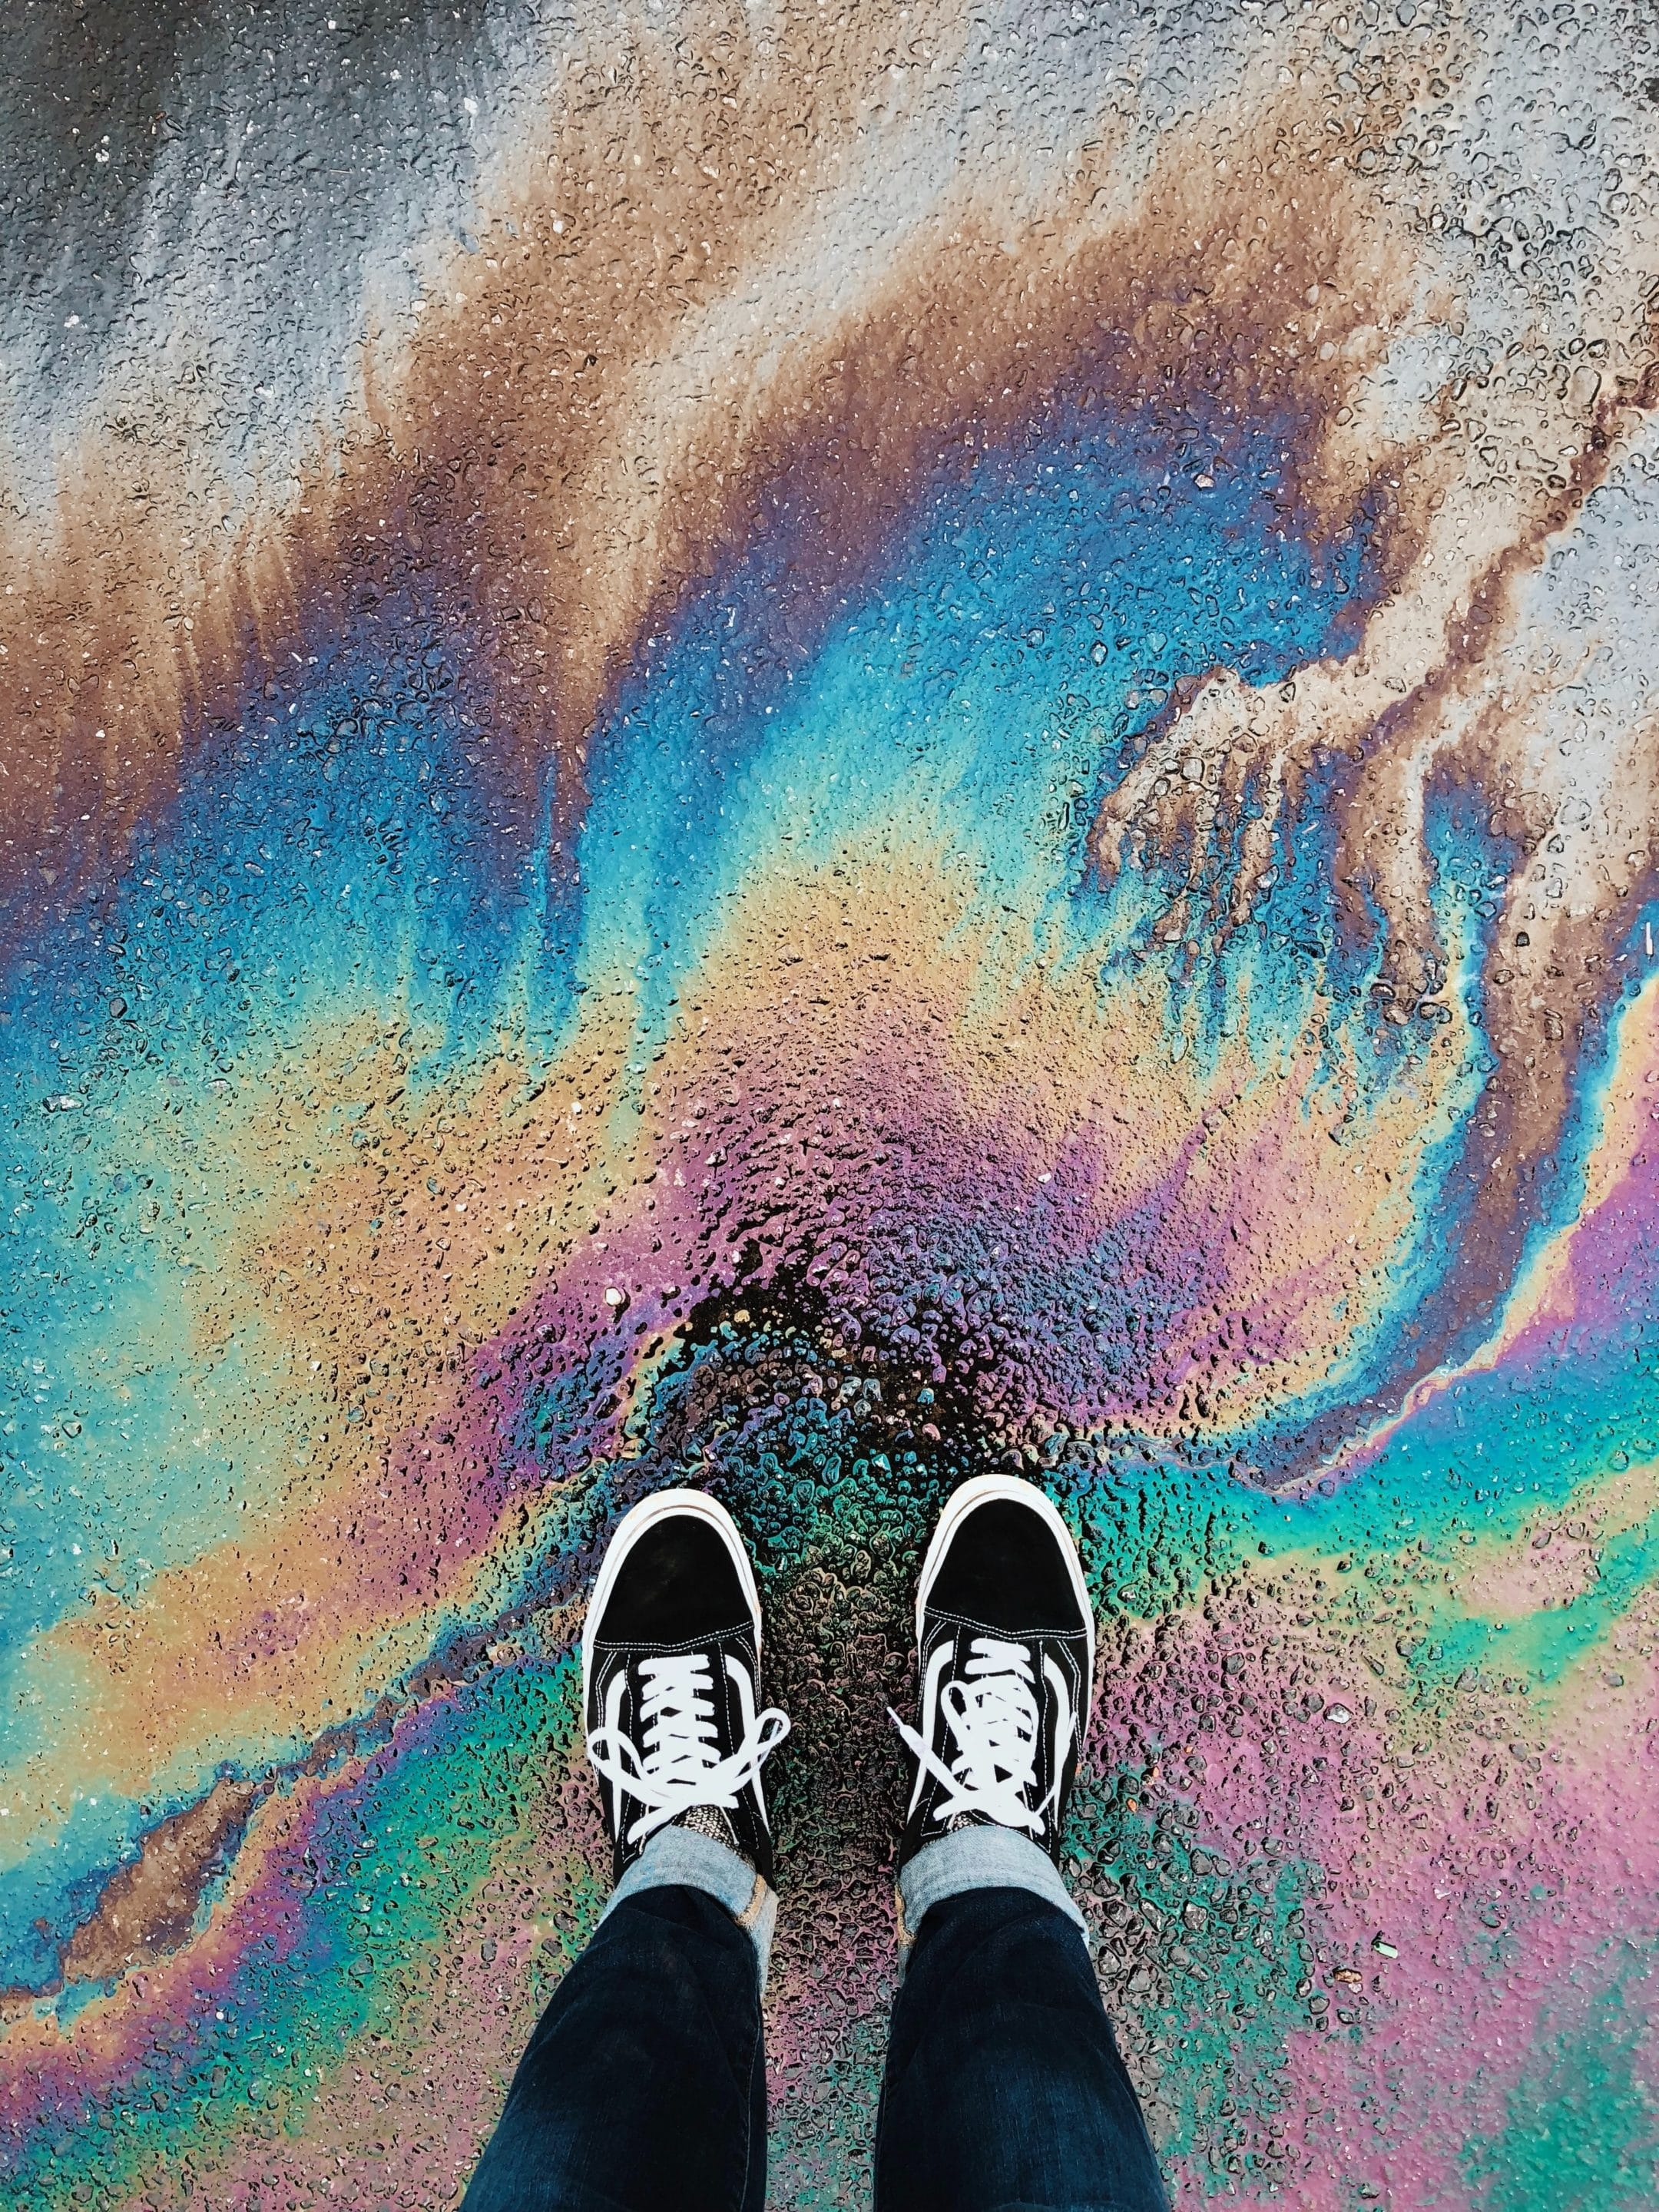 oil on asphalt